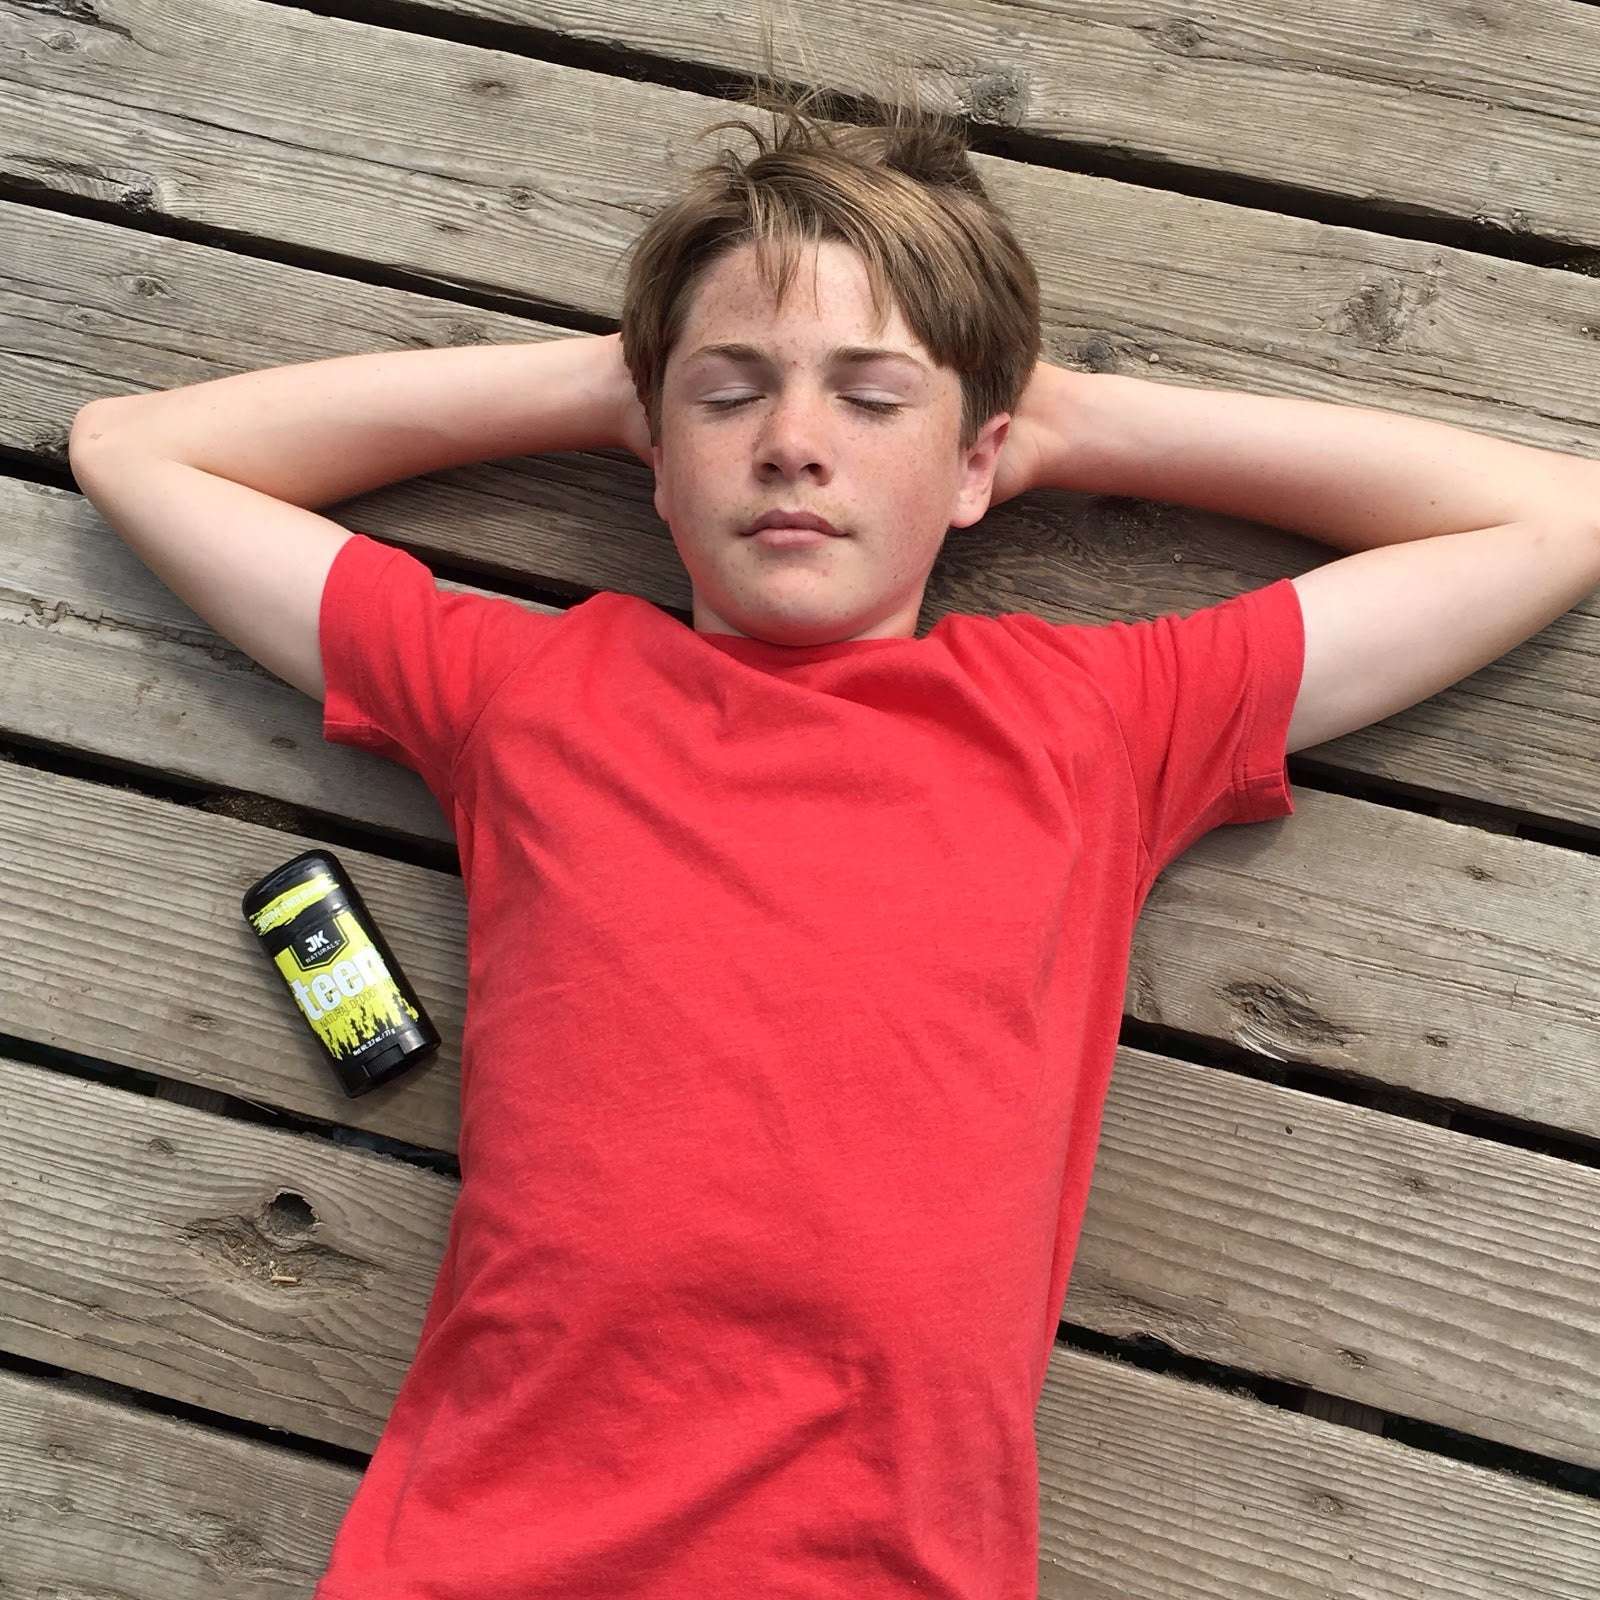 Sweat and Body Odor: Why Does My Child Need Deodorant?